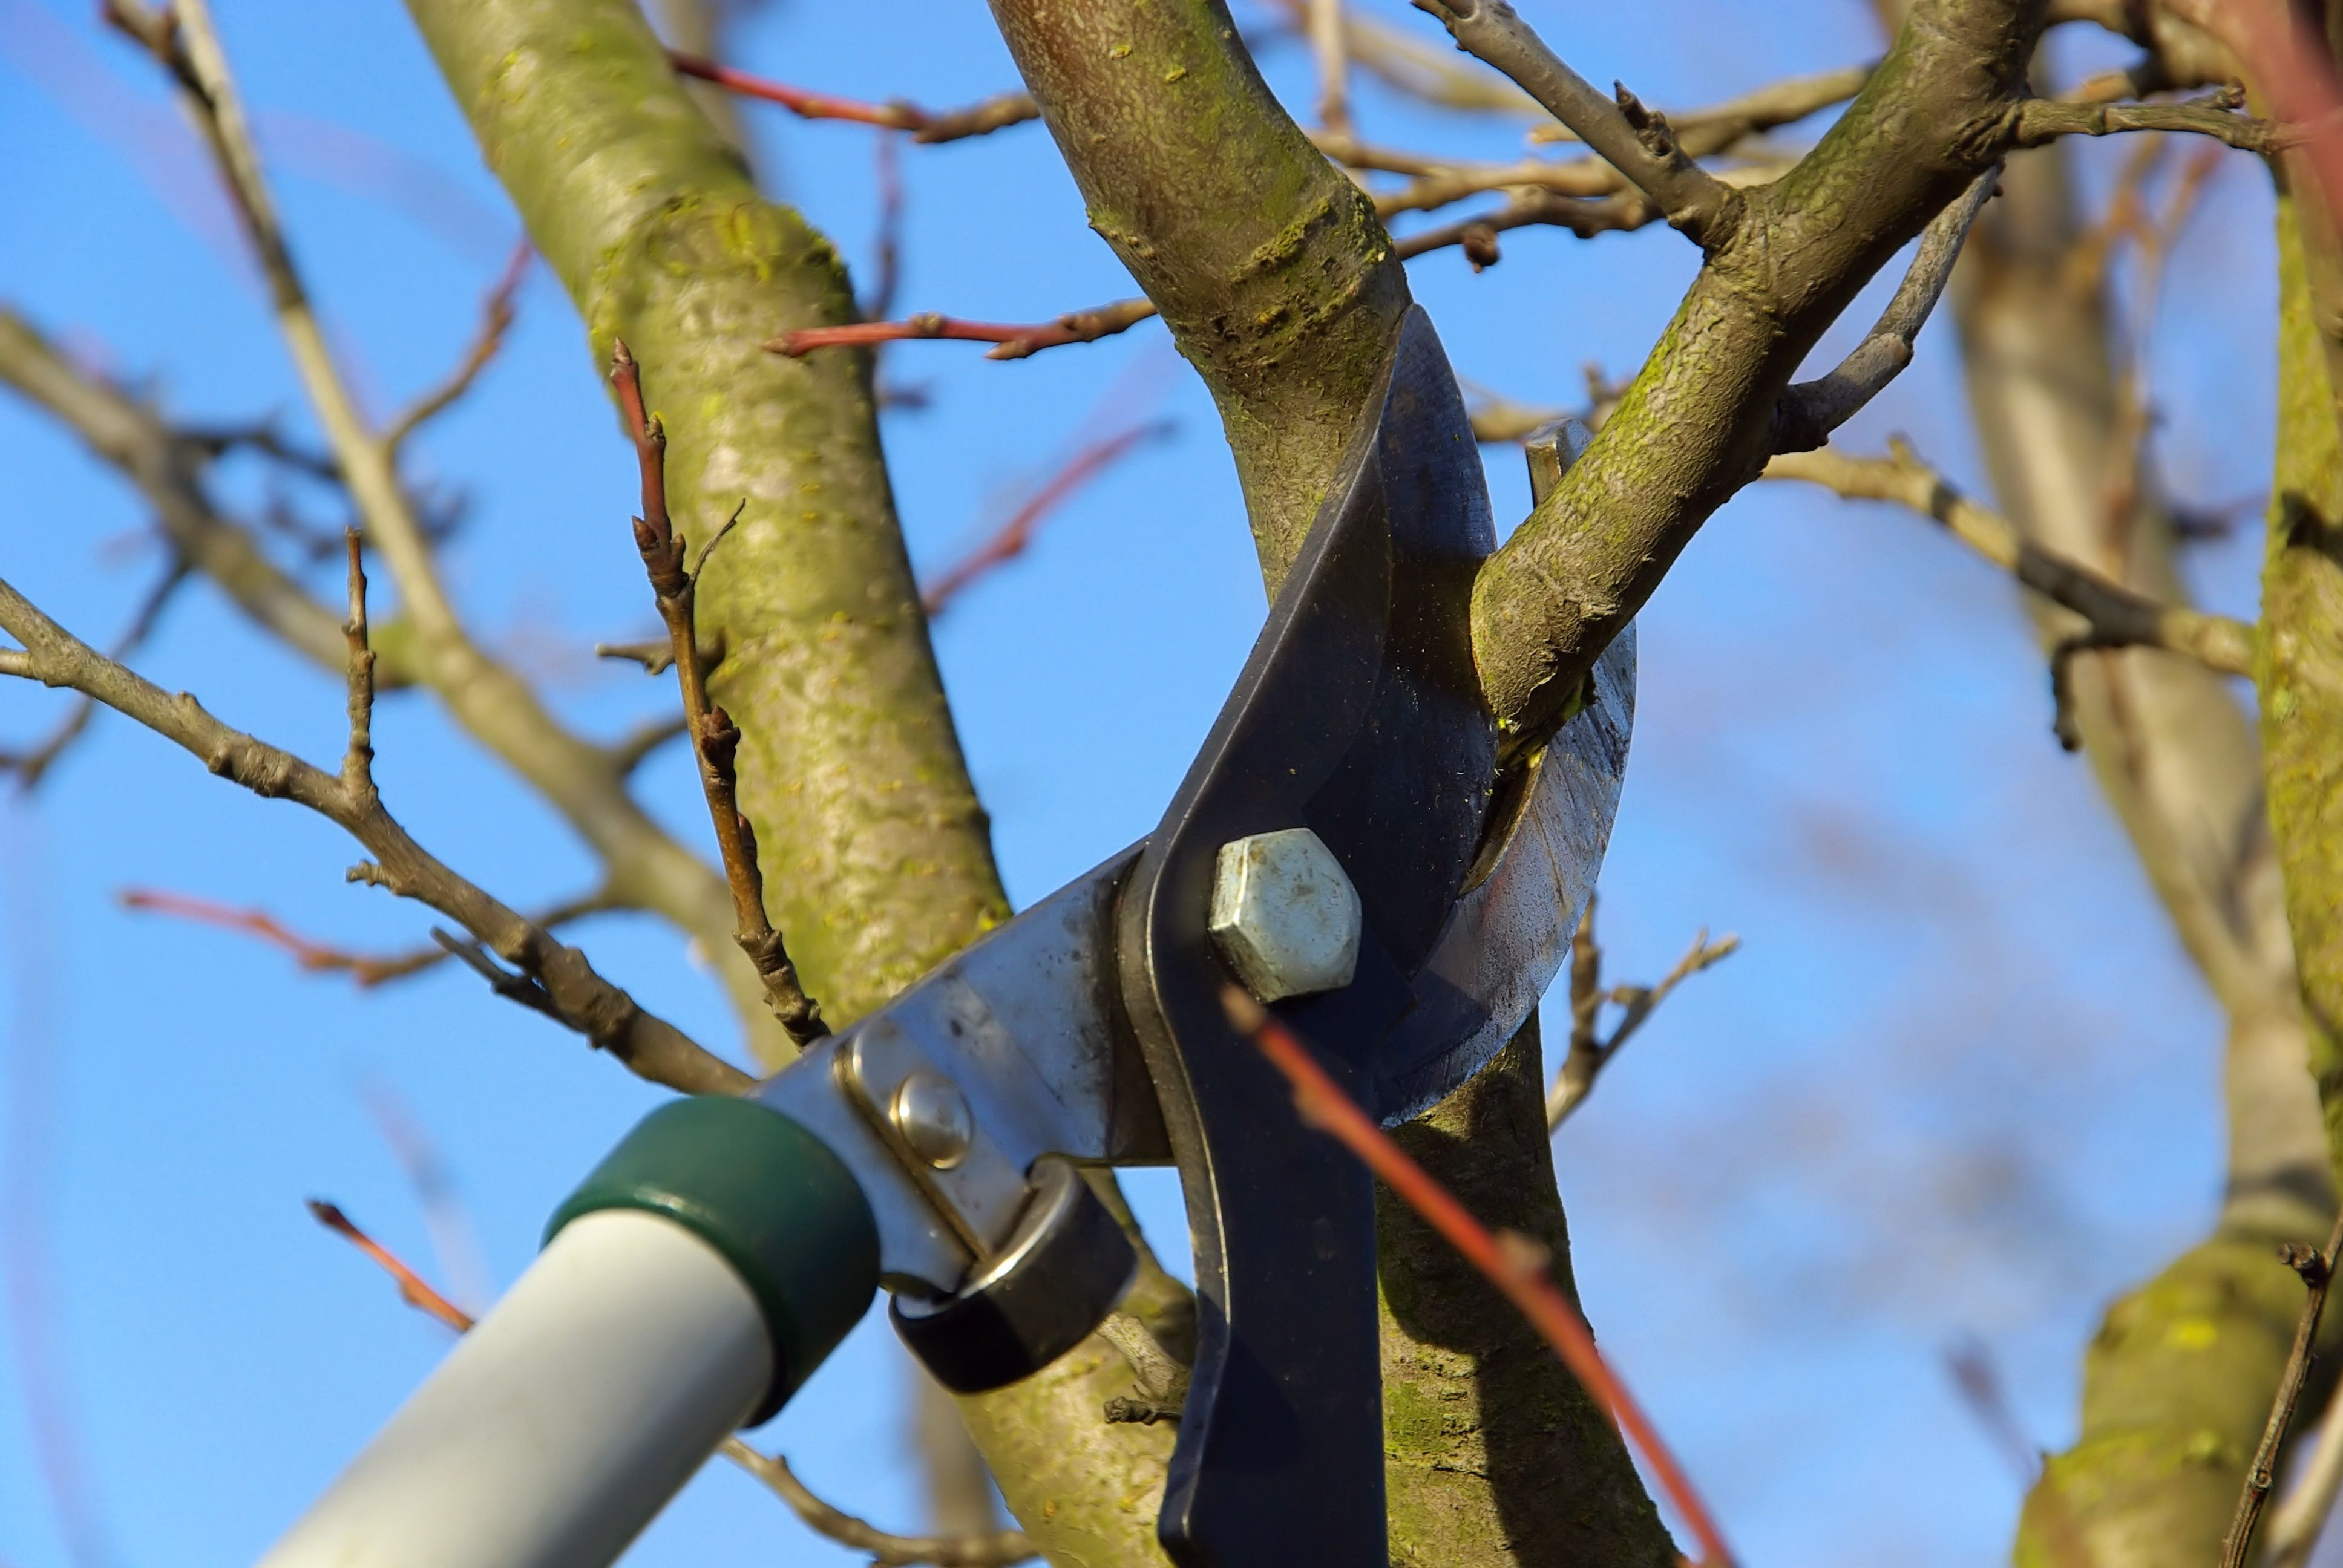 Tree Service in Sparks Shares How Often to Prune Trees